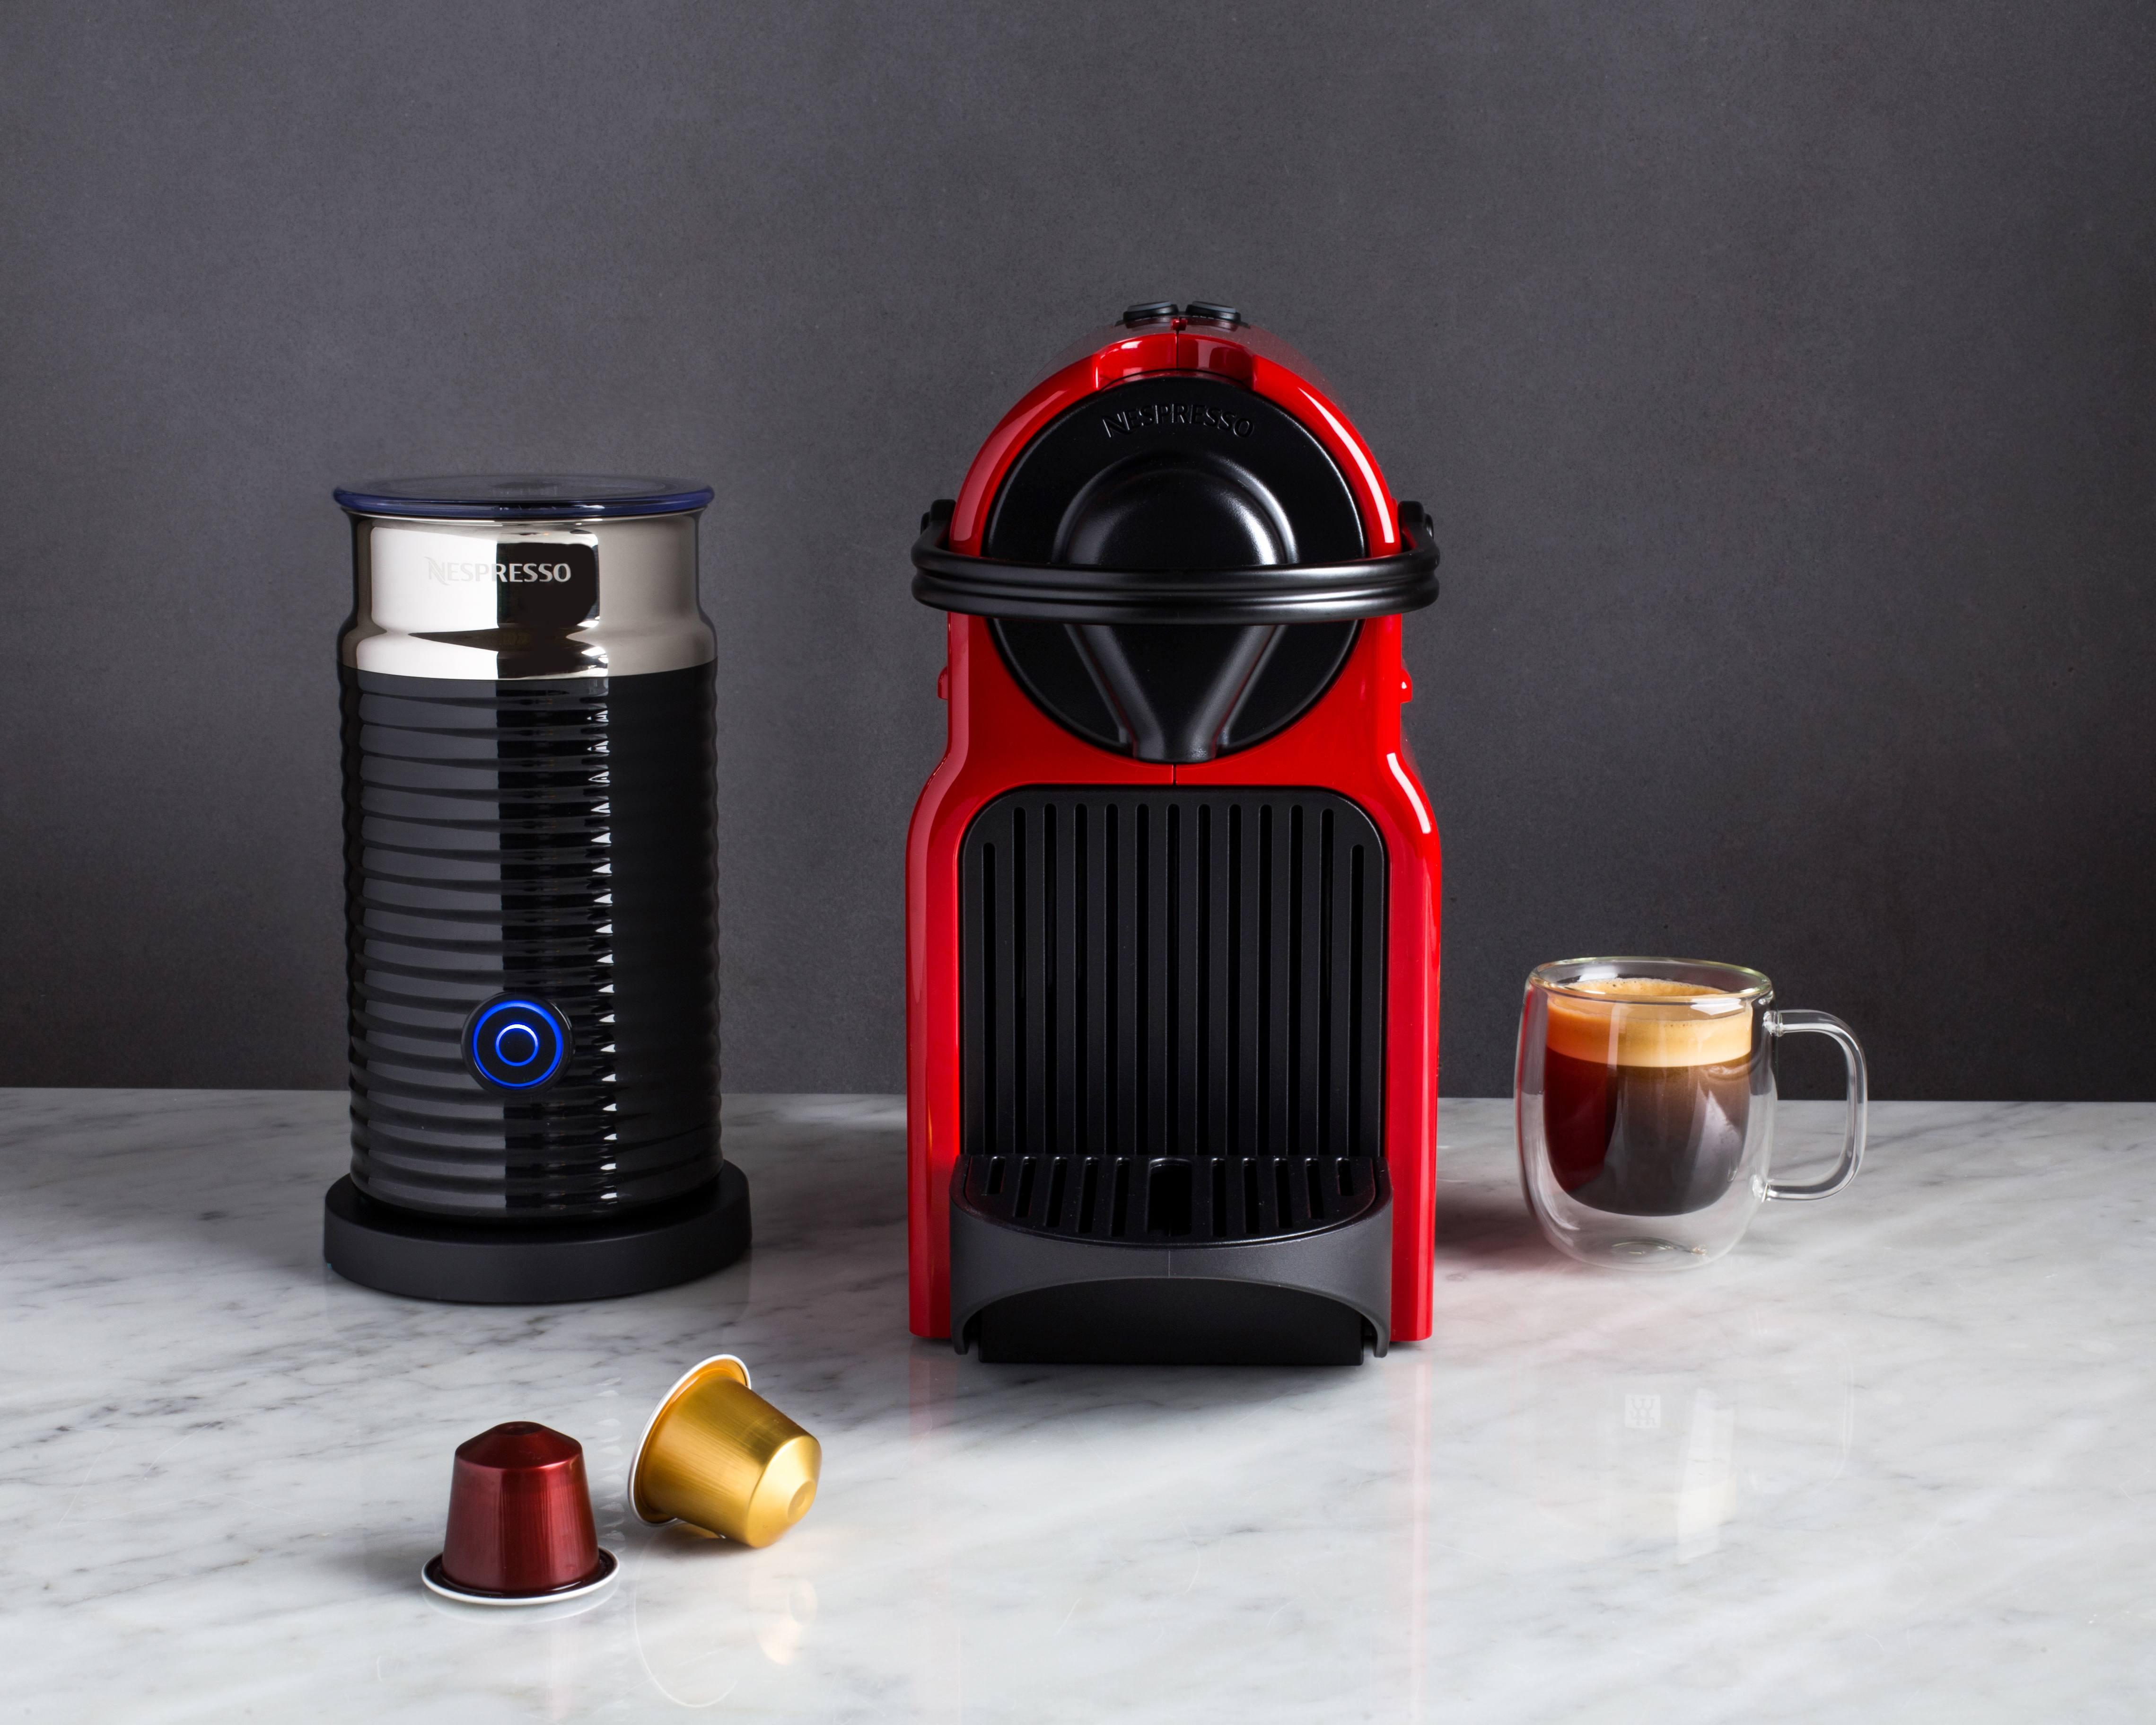 nespresso espresso machine and frother